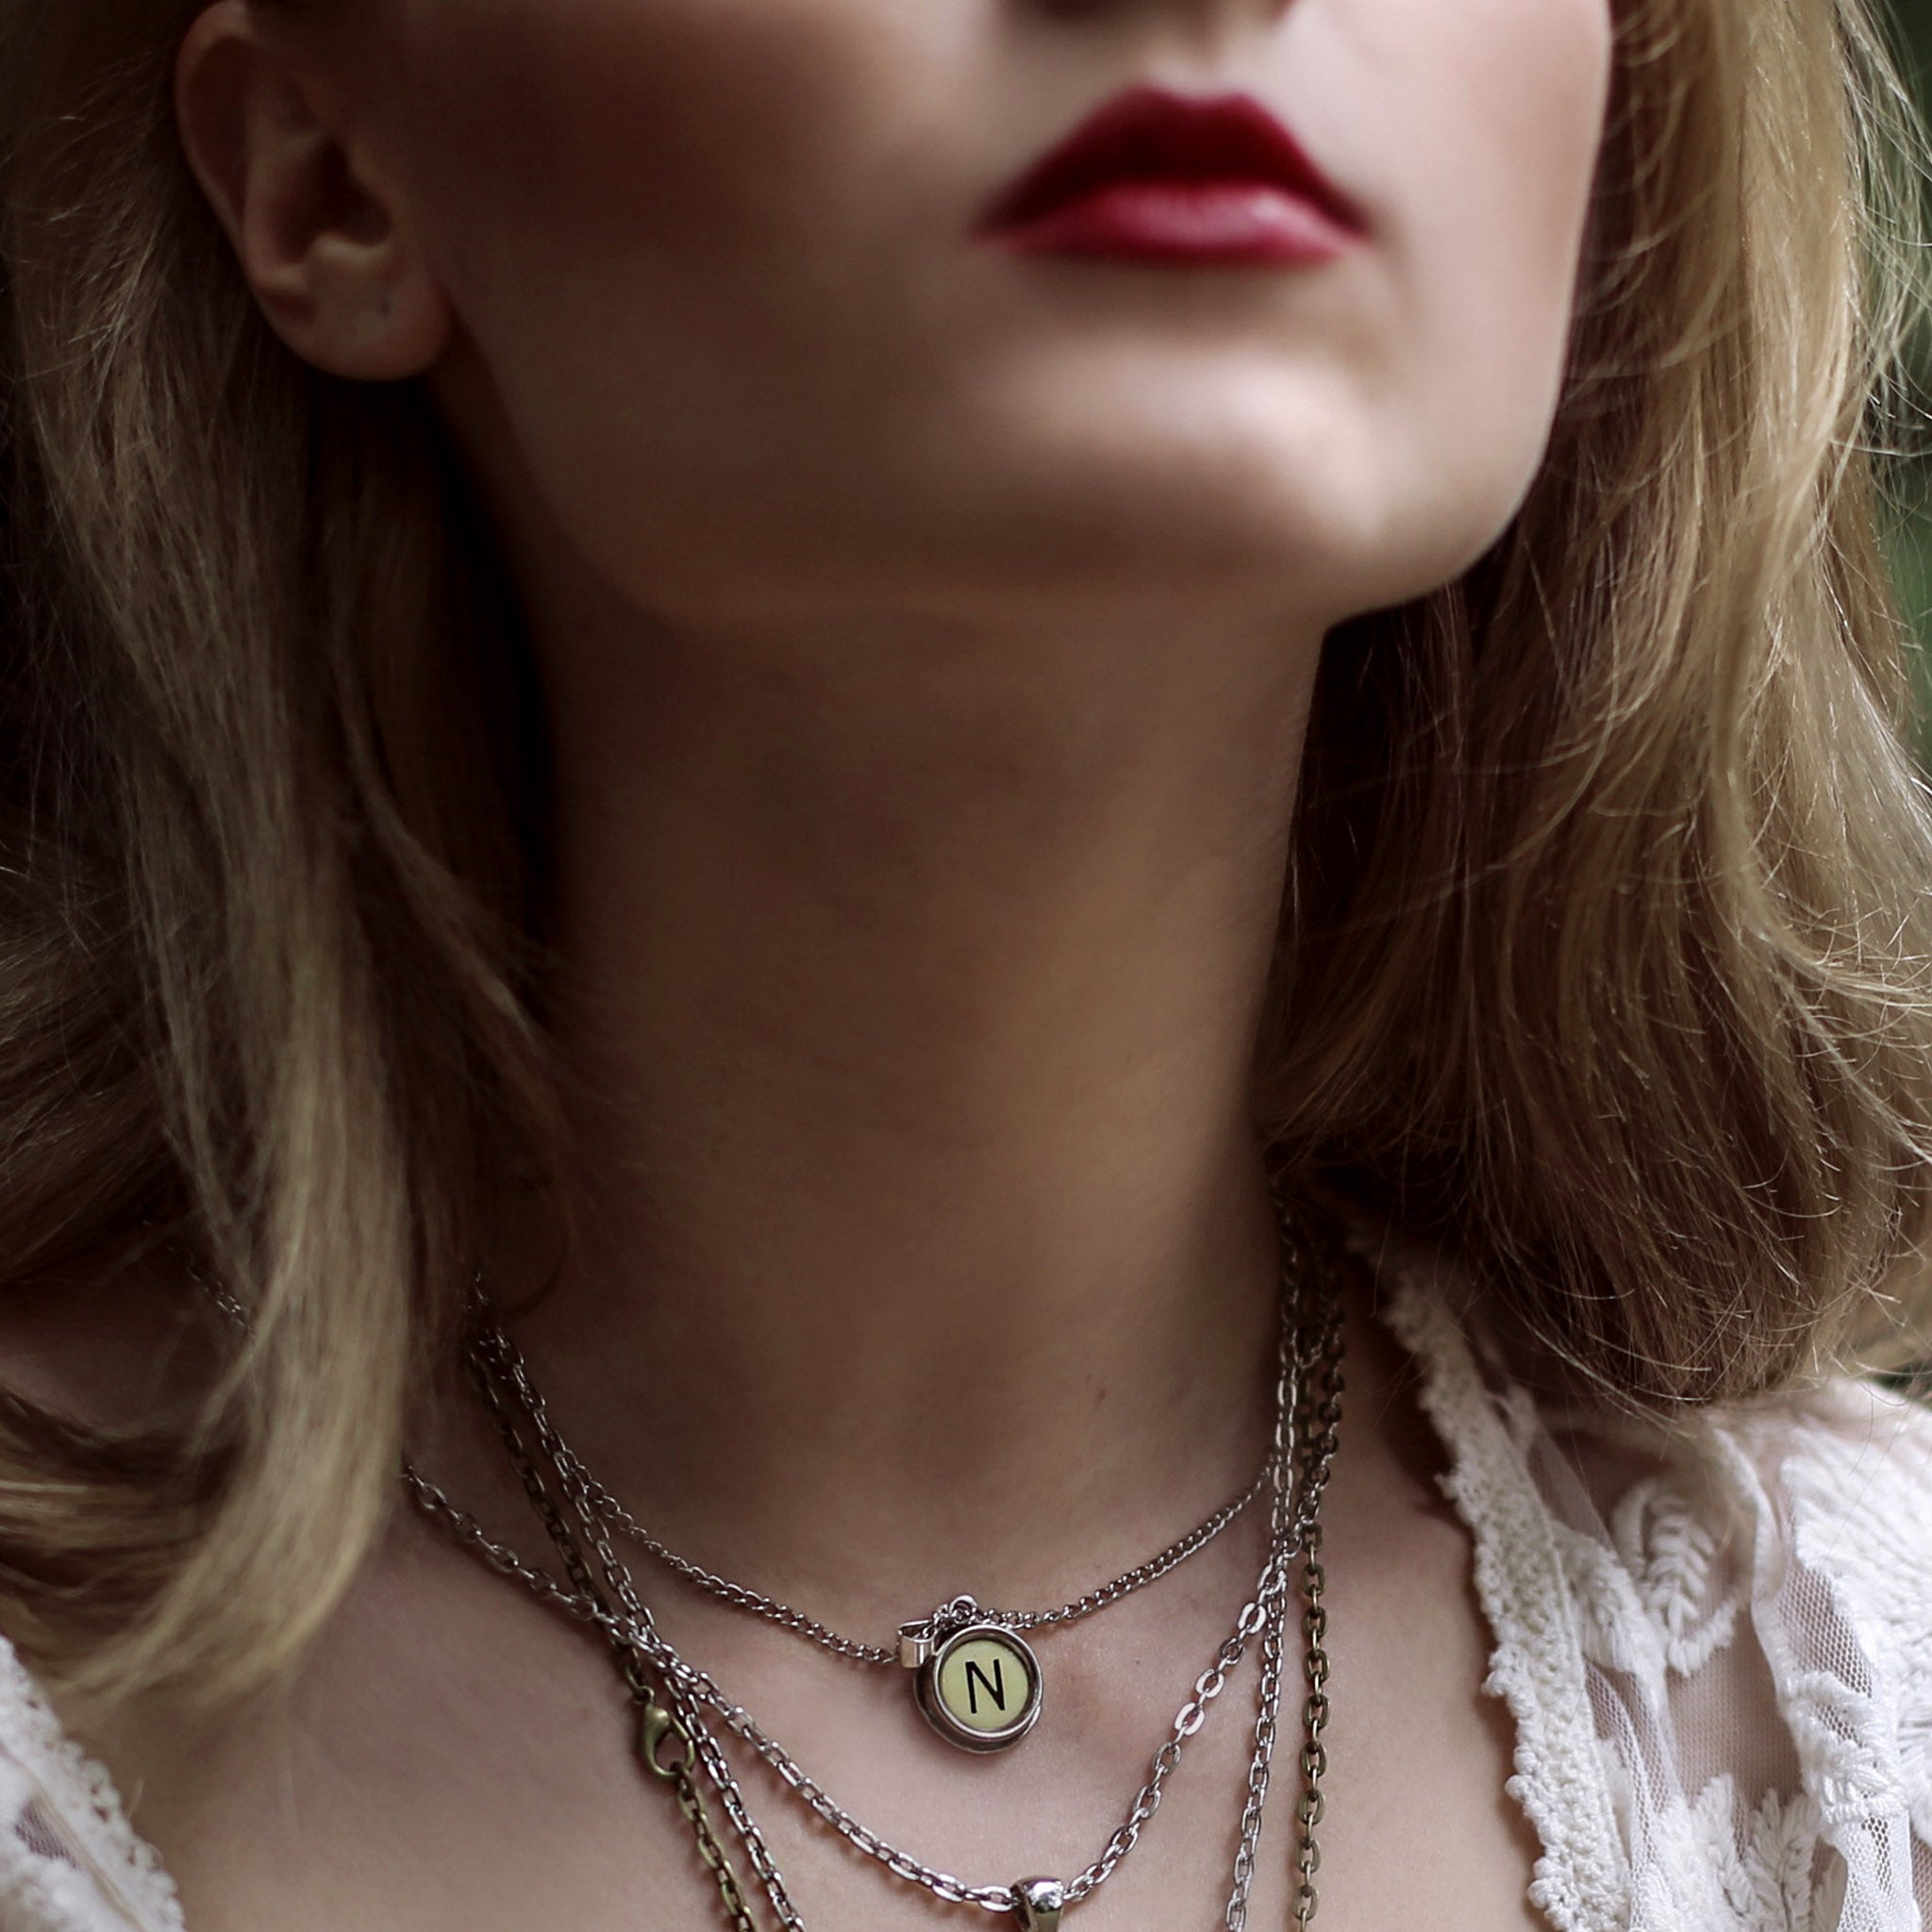 Model wearing initial necklace made of authentic vintage ivory typewriter key